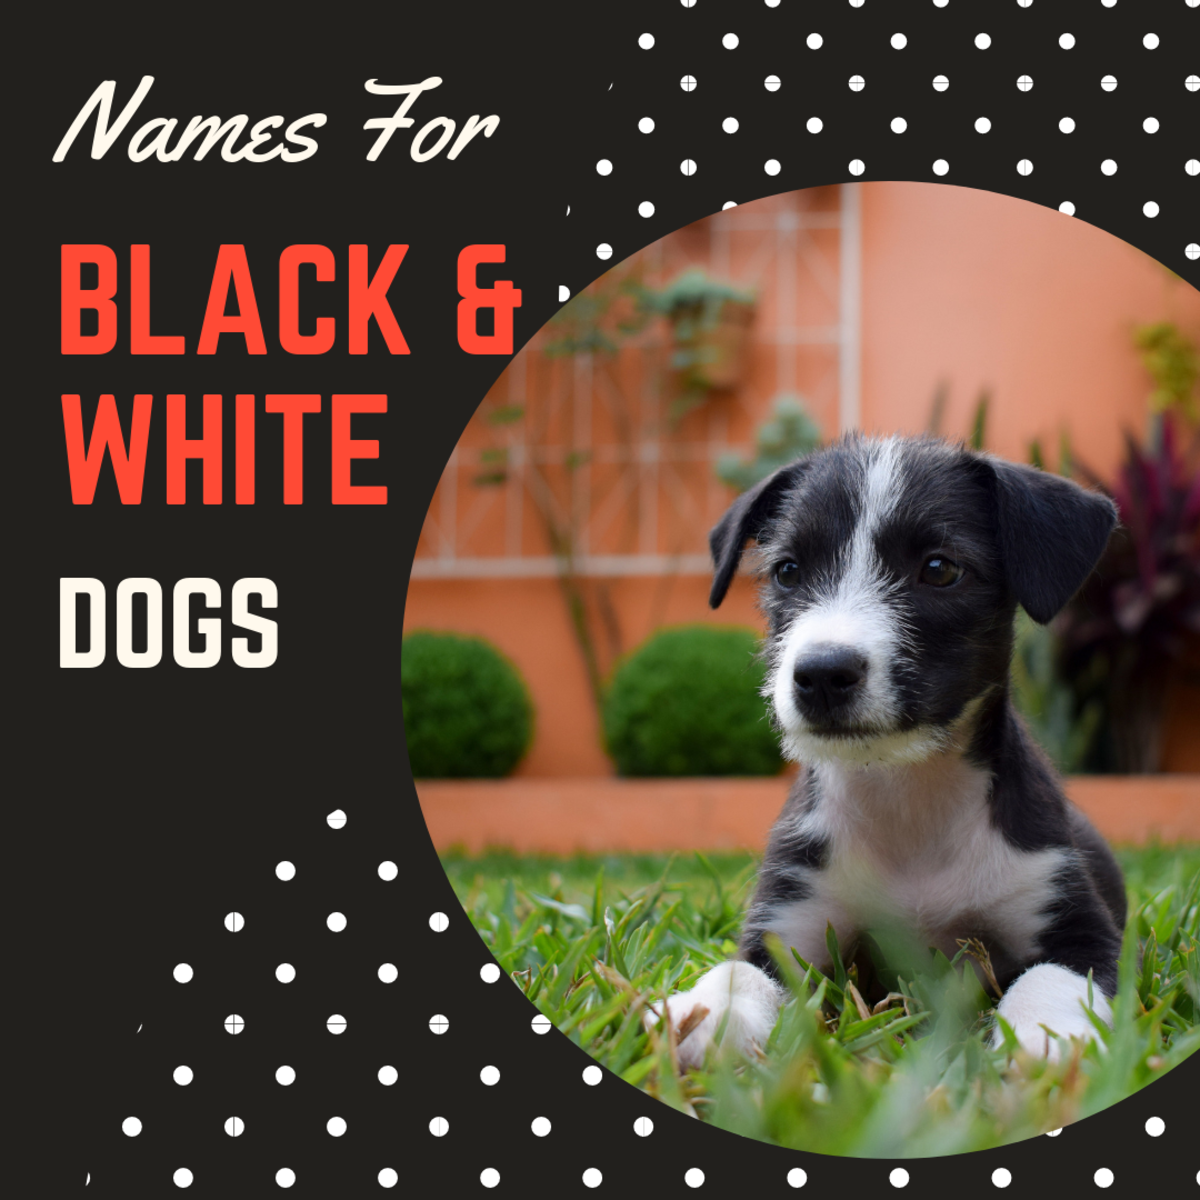 100 Black And White Dog Names Pethelpful By Fellow Animal Lovers And Experts